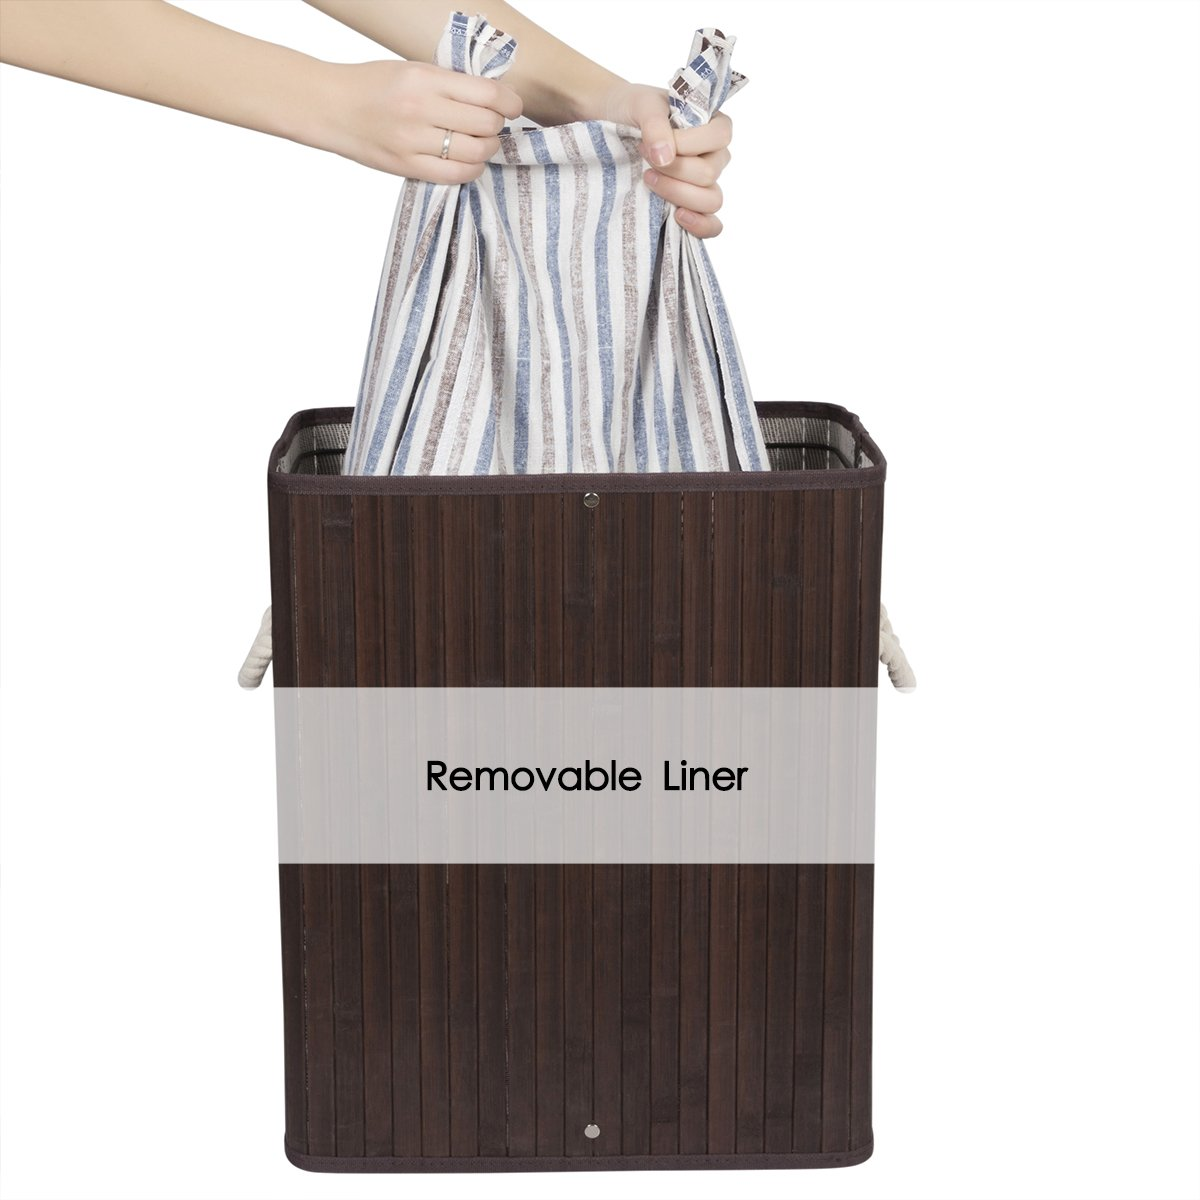 ZERO JET LAG 40L Bamboo Laundry Hamper Laundry Basket Dirty Clothes Box Natural Laundry Bin Lid Handles Removable Liner Collapsible Dirty Clothes Organizer(Dark Brown)